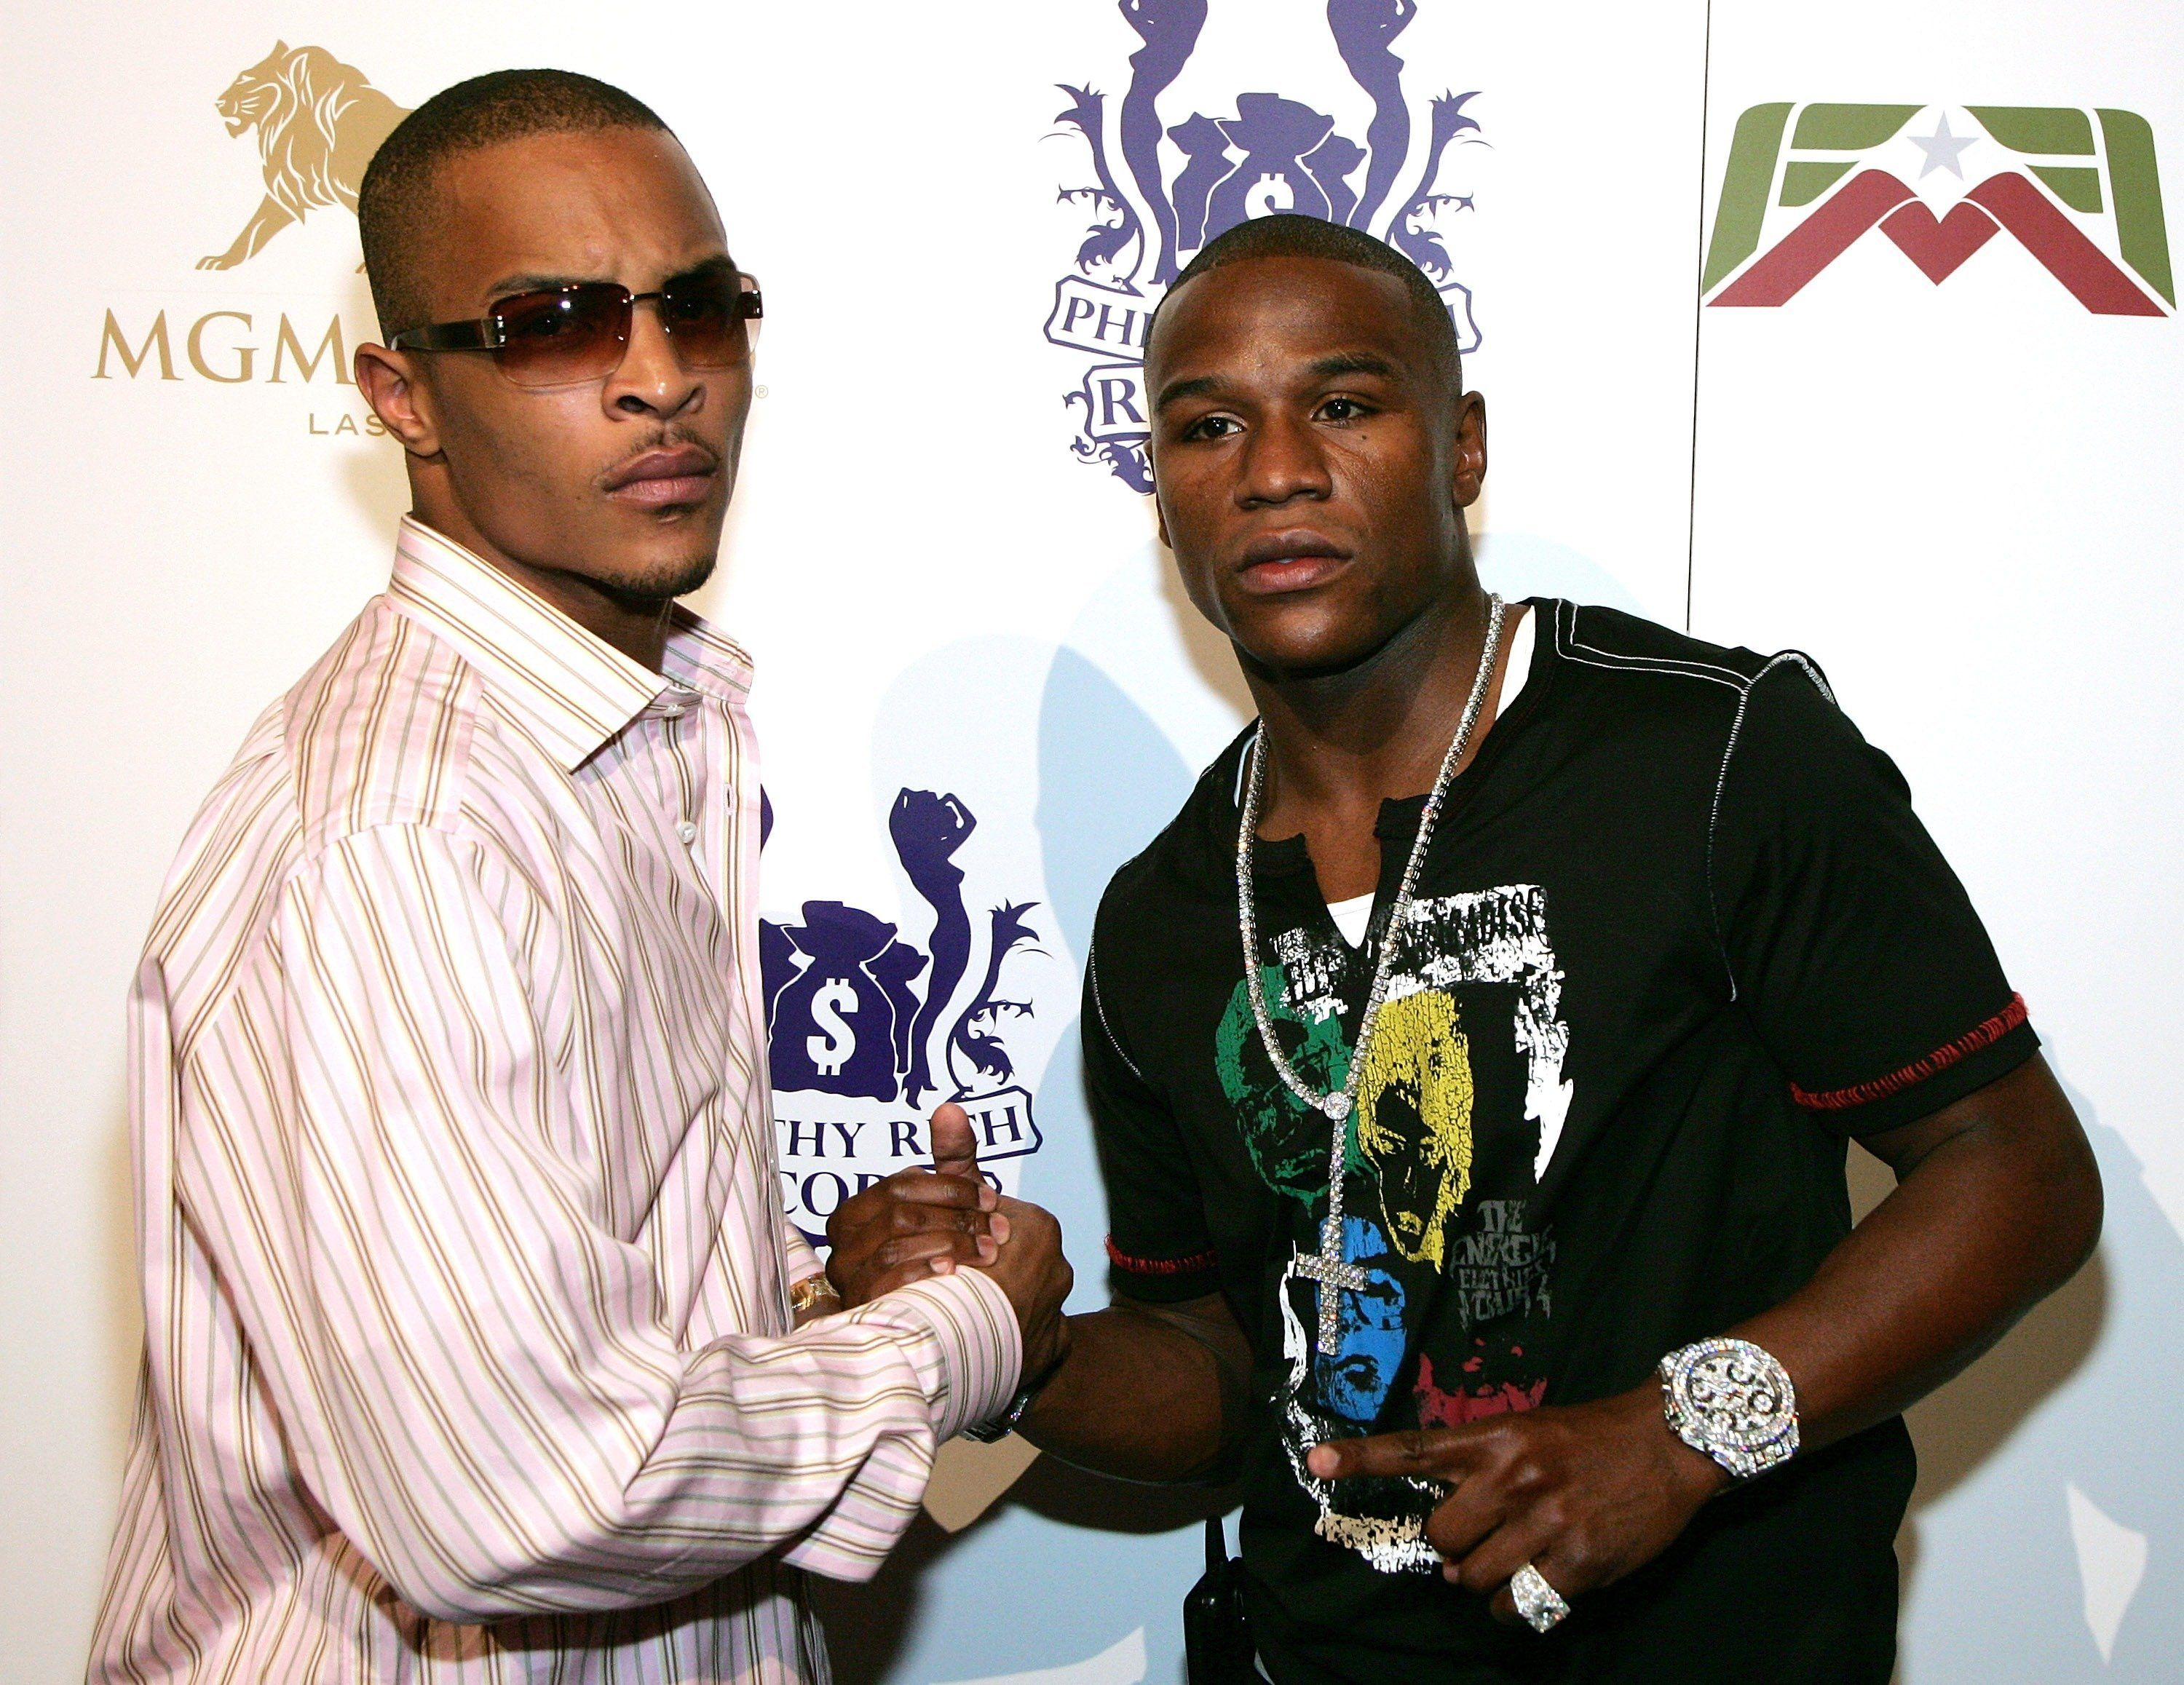 LAS VEGAS - JULY 29:  Rapper T.I. (L) and boxer Floyd Mayweather Jr. arrive at a party at Studio 54 inside the MGM Grand Hotel/Casino July 29, 2007 in Las Vegas, Nevada.   (Photo by Ethan Miller/Getty Images for MGM)